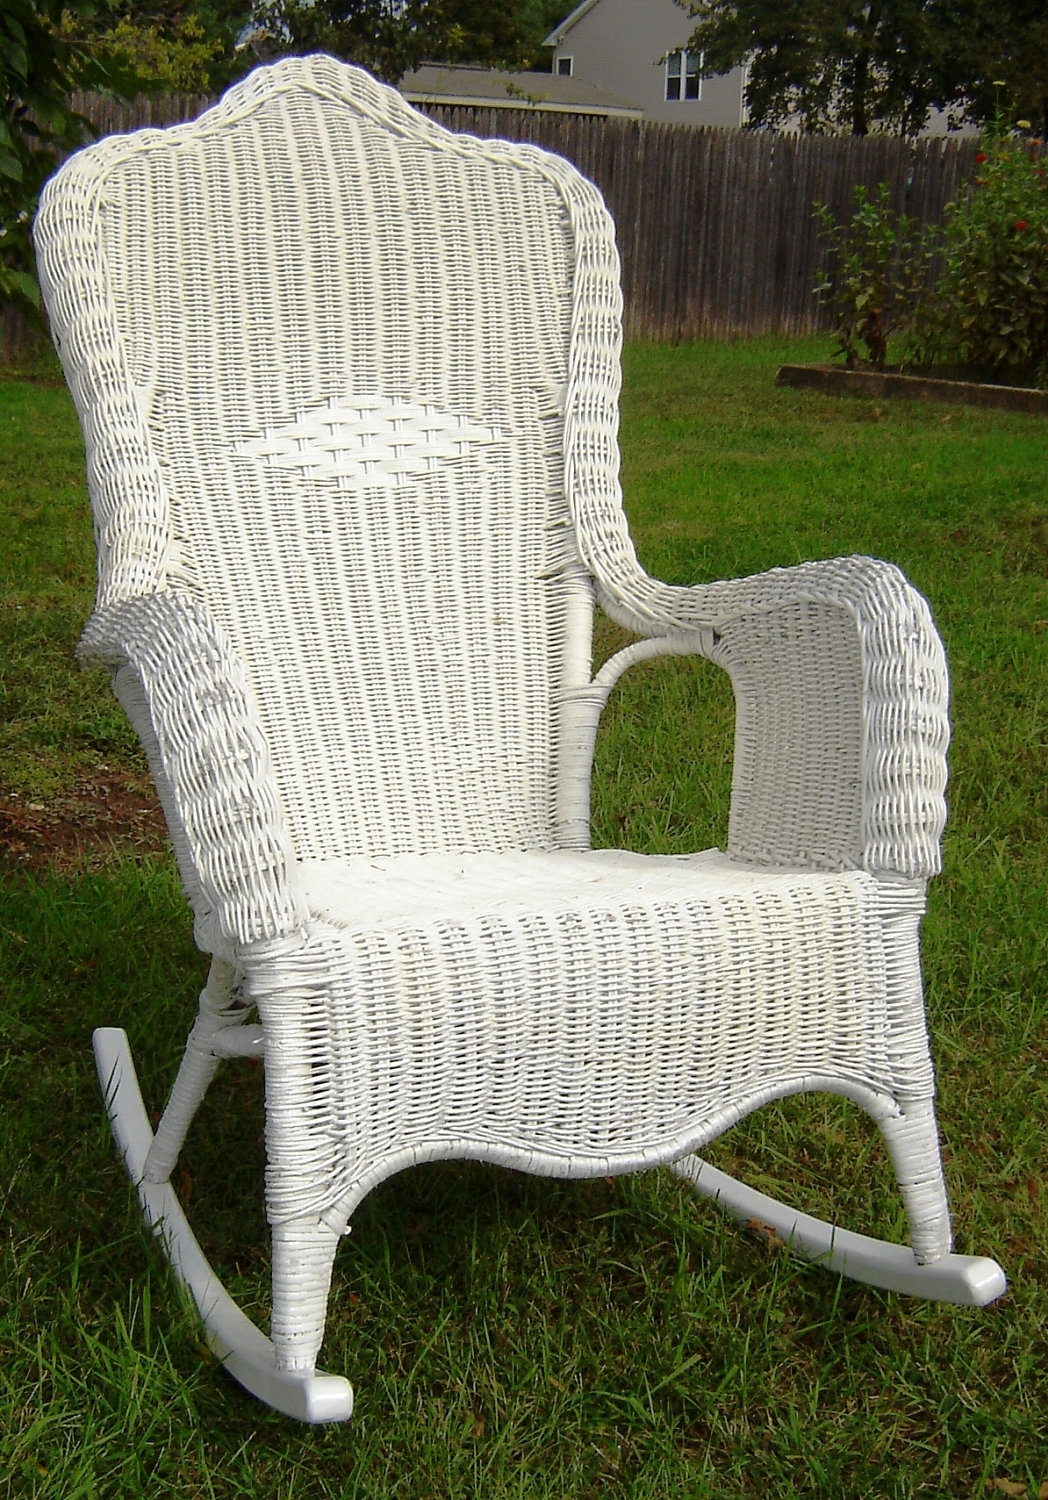 Chair Design Ideas Best Vintage Wicker Chairs Home Antique Cane Within Well Liked Antique Wicker Rocking Chairs With Springs (View 8 of 15)